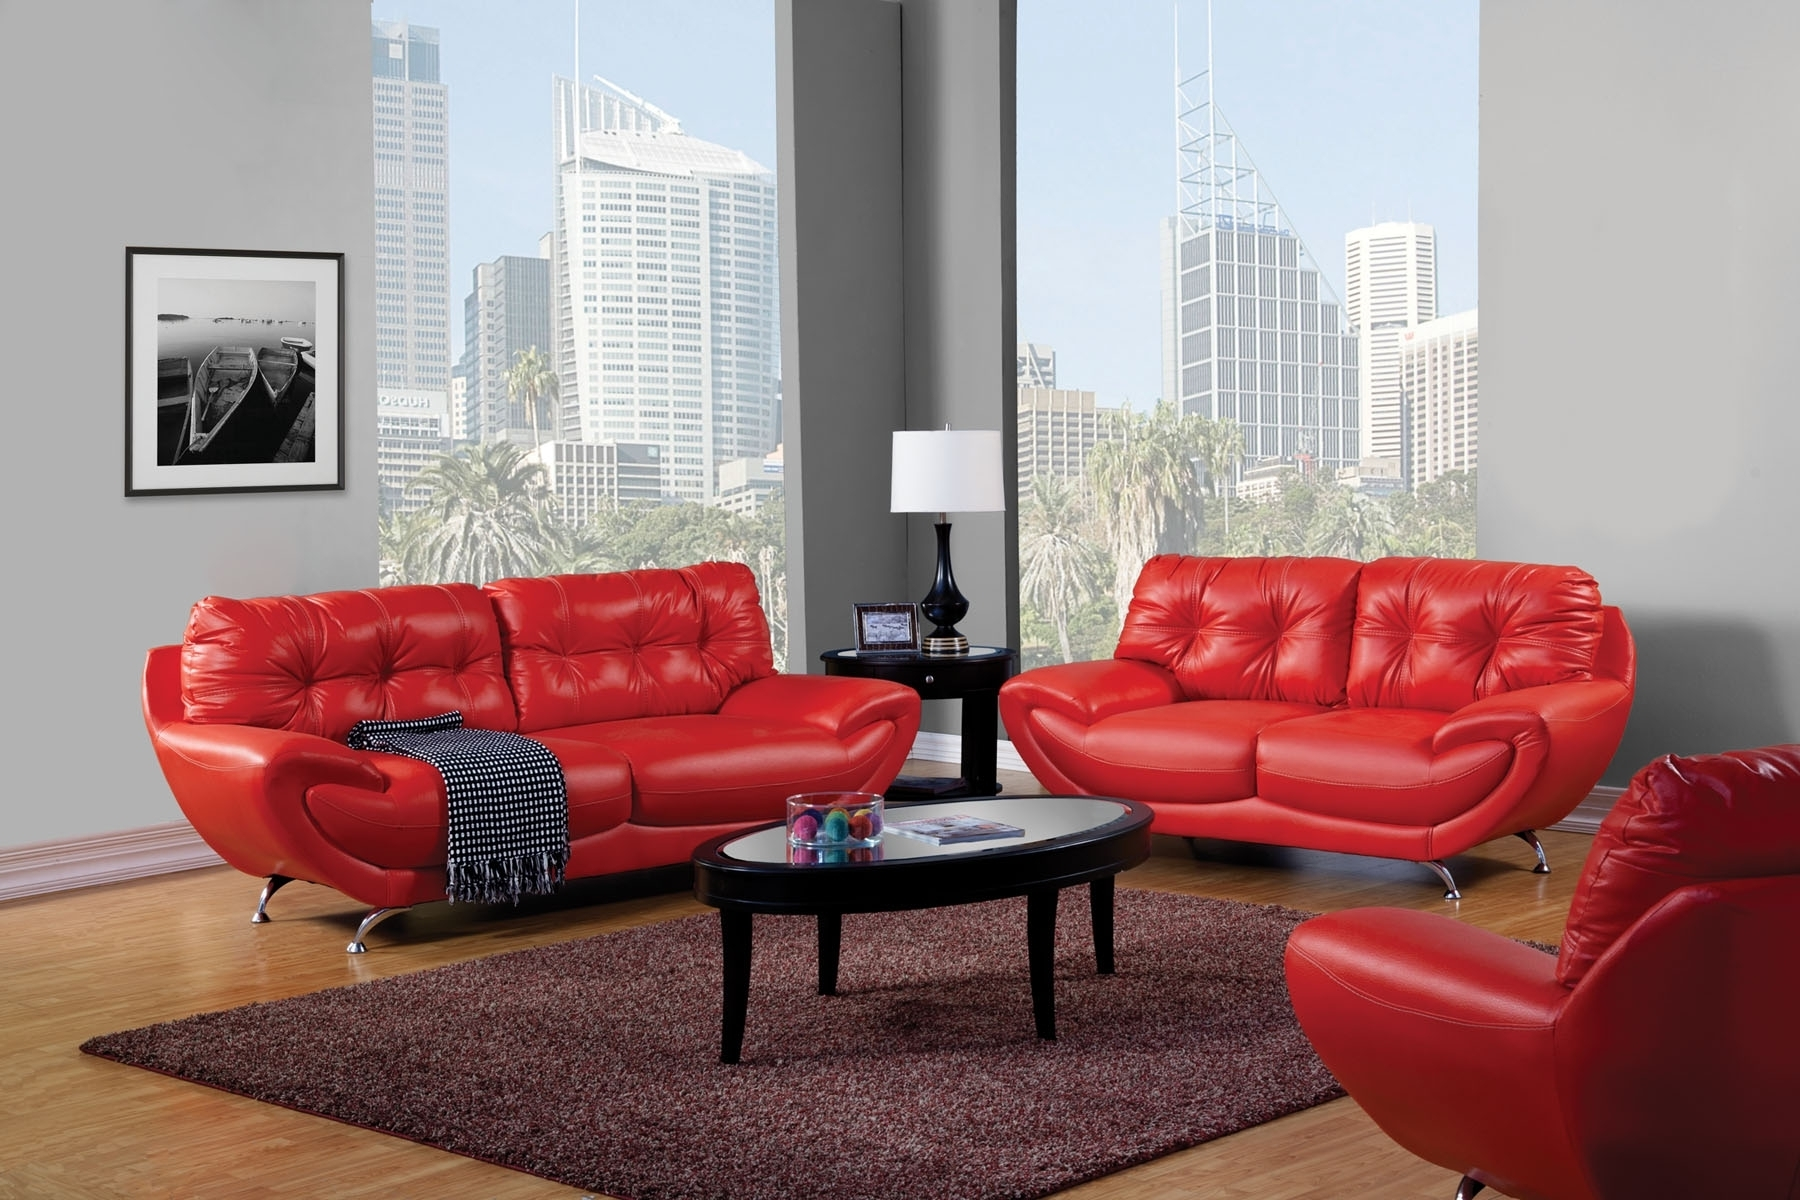 Red Leather Couches For Living Room Inside Well Known Red Leather Sofa Living Room Design • Living Room Design (View 7 of 20)